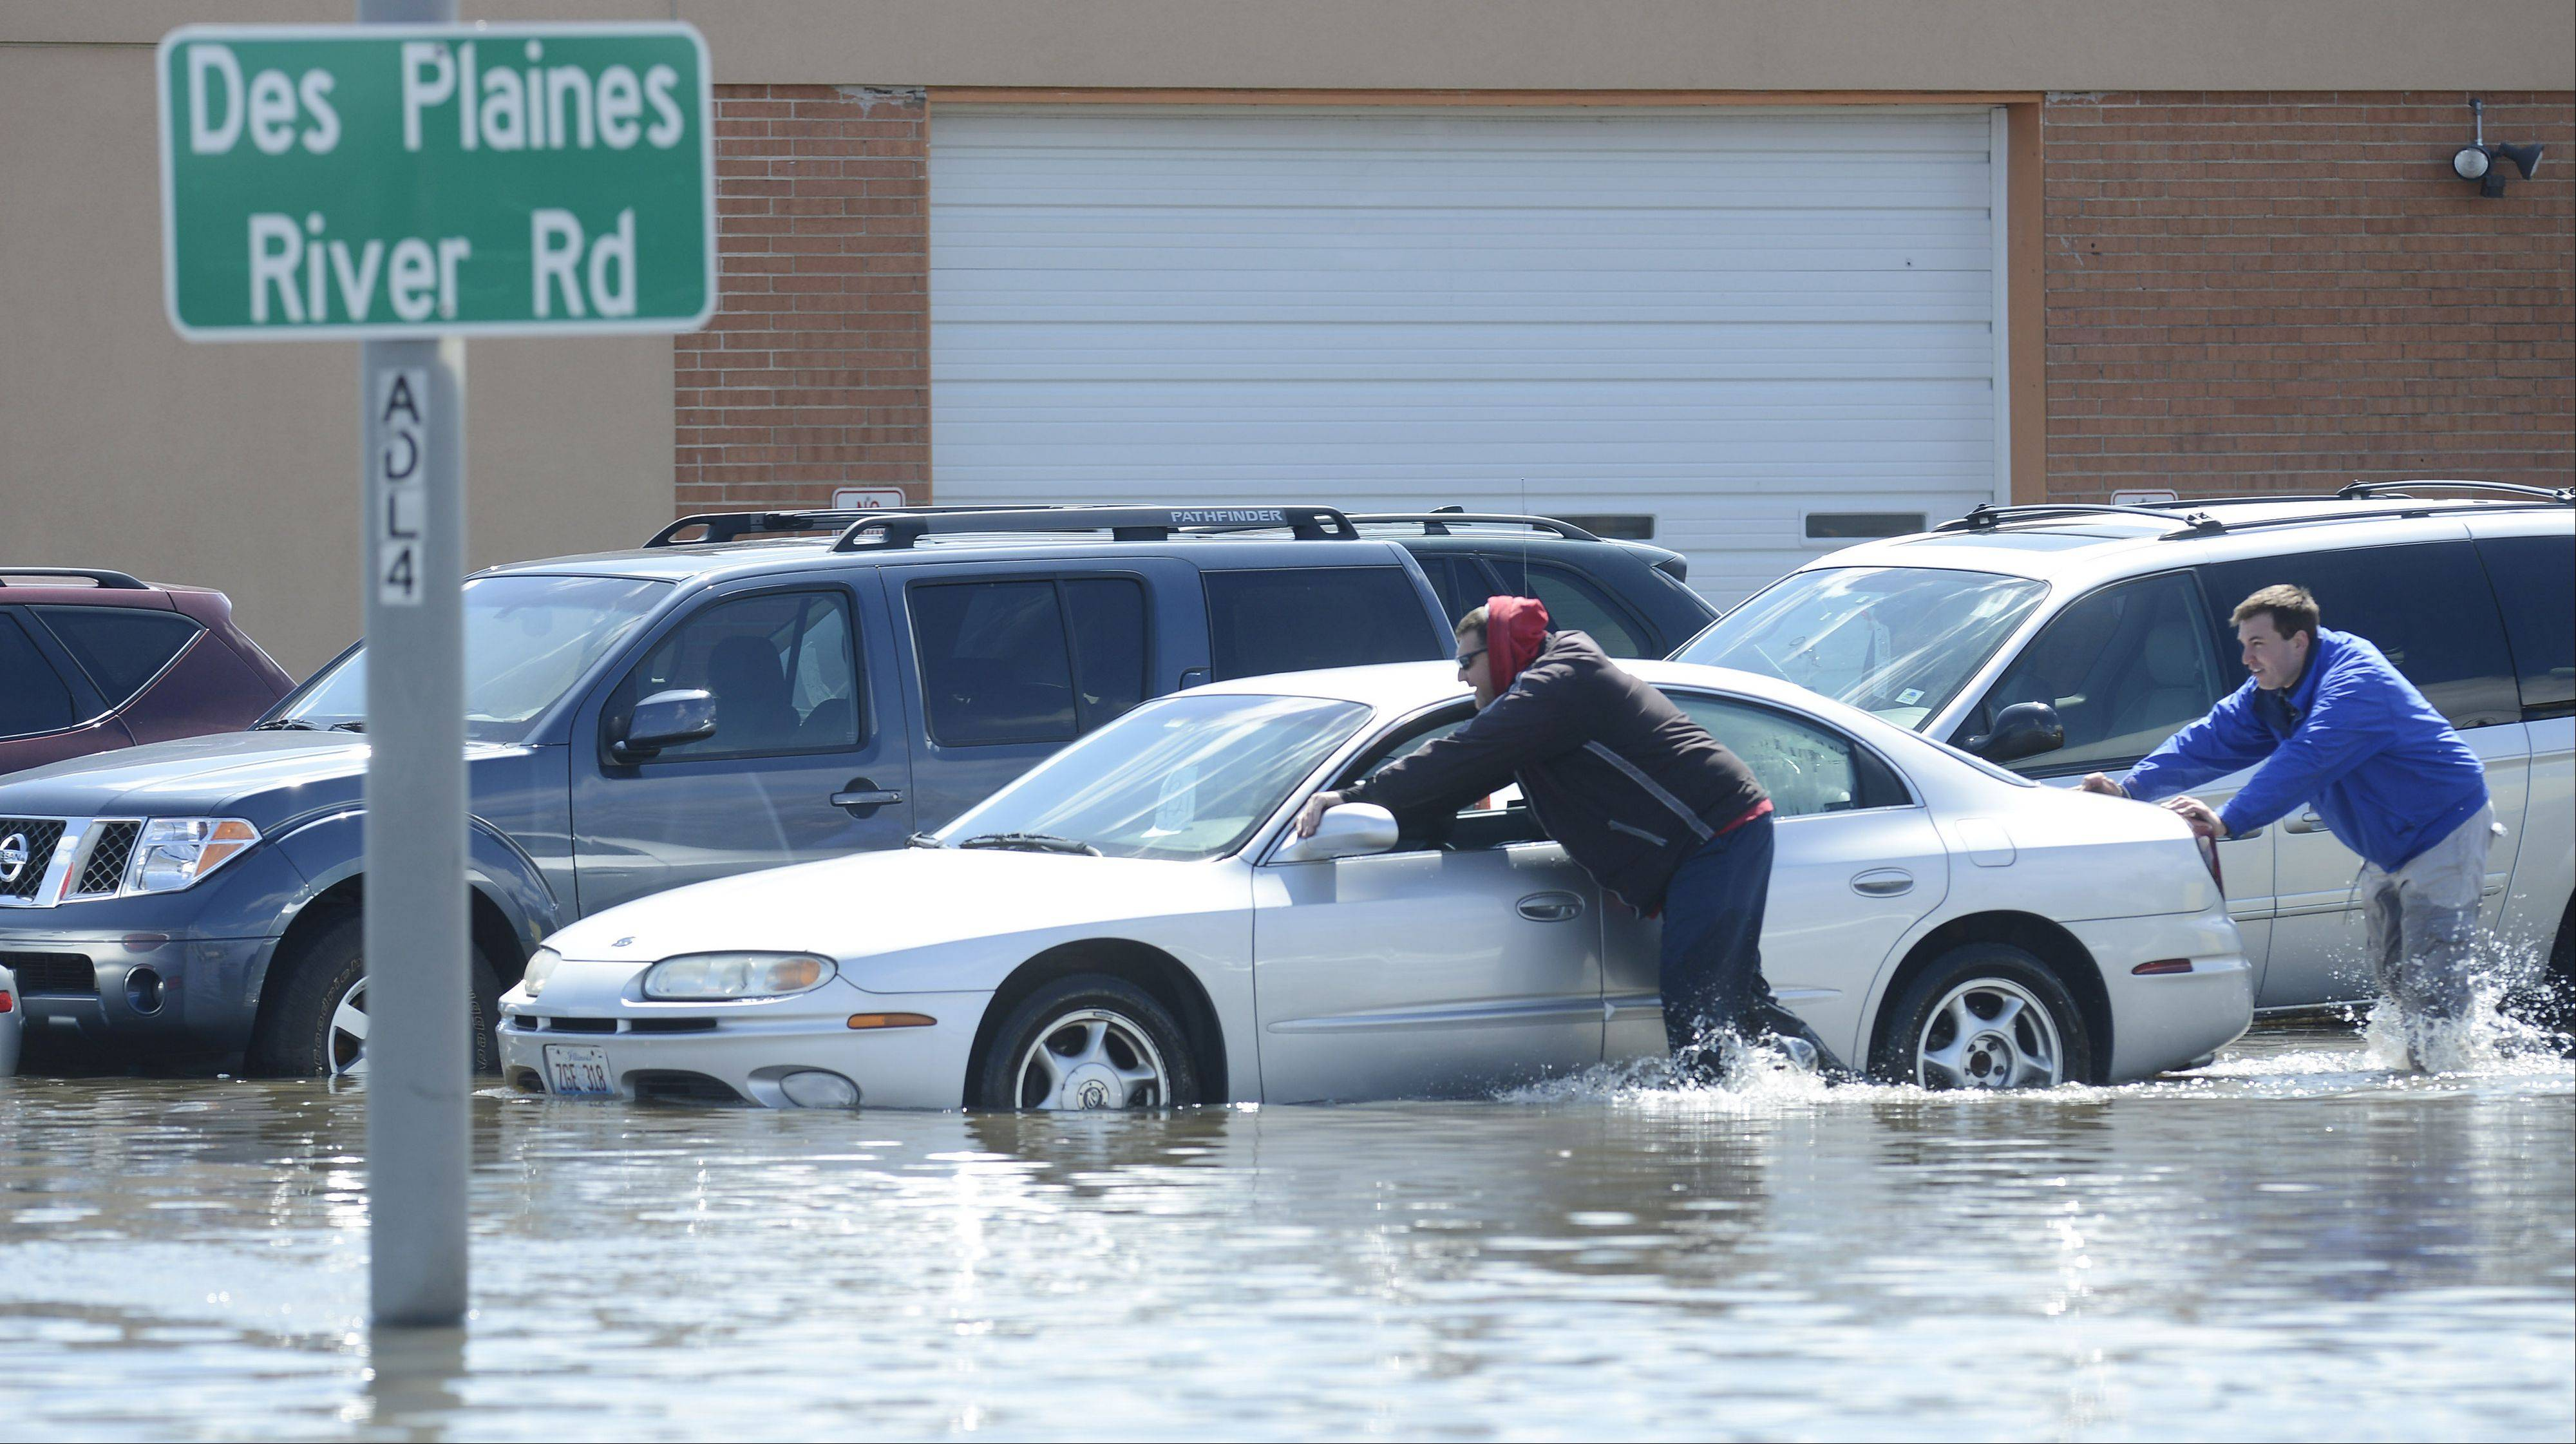 Steve Rush, left, and Rob Burns push a car from a flooded used car lot toward higher ground in Des Plaines Saturday. The pair started the cars once they were safely on higher ground.